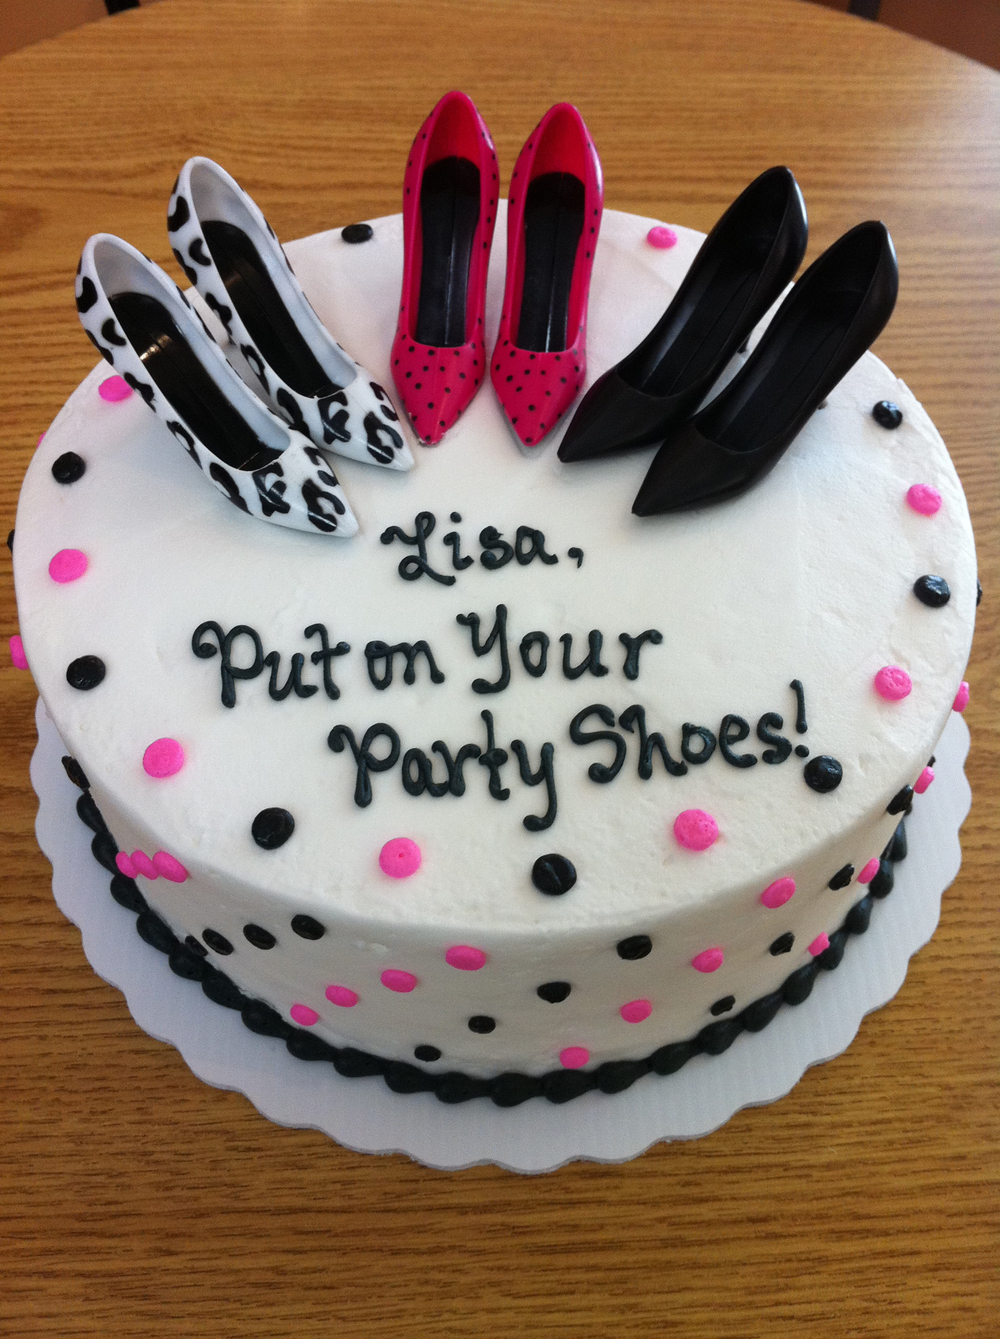 Put Your Party Shoes On!